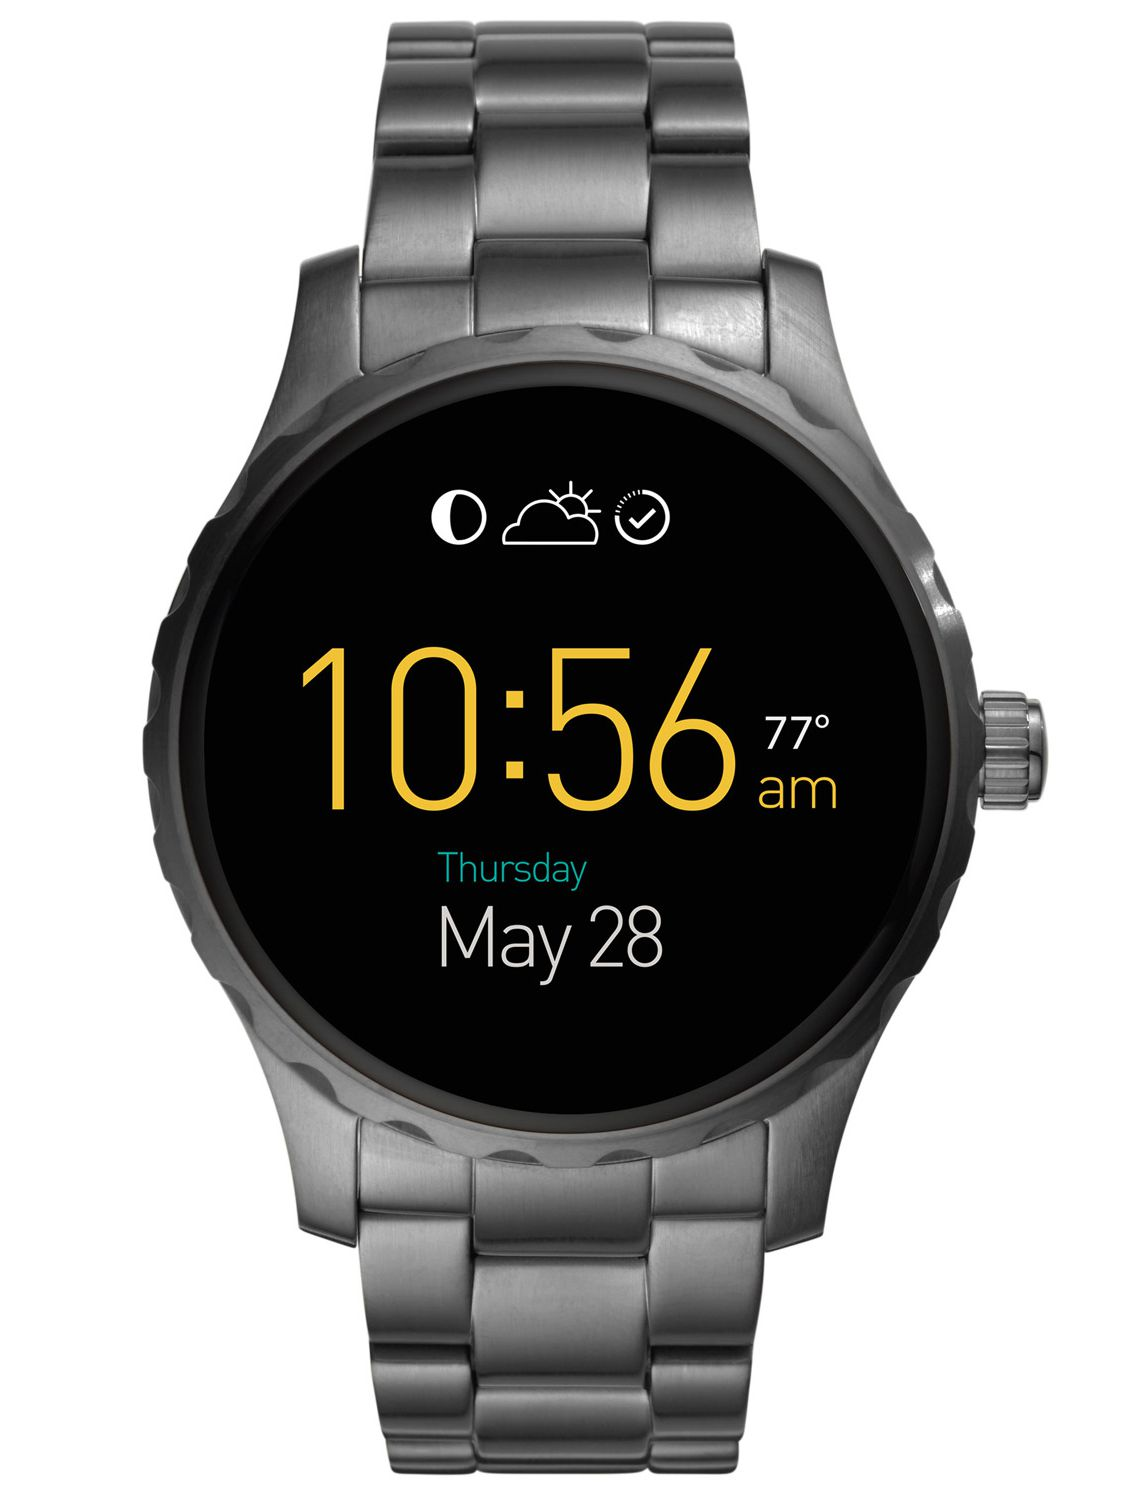 Fossil Q FTW2108 Smartwatch Marshal Touchscreen...